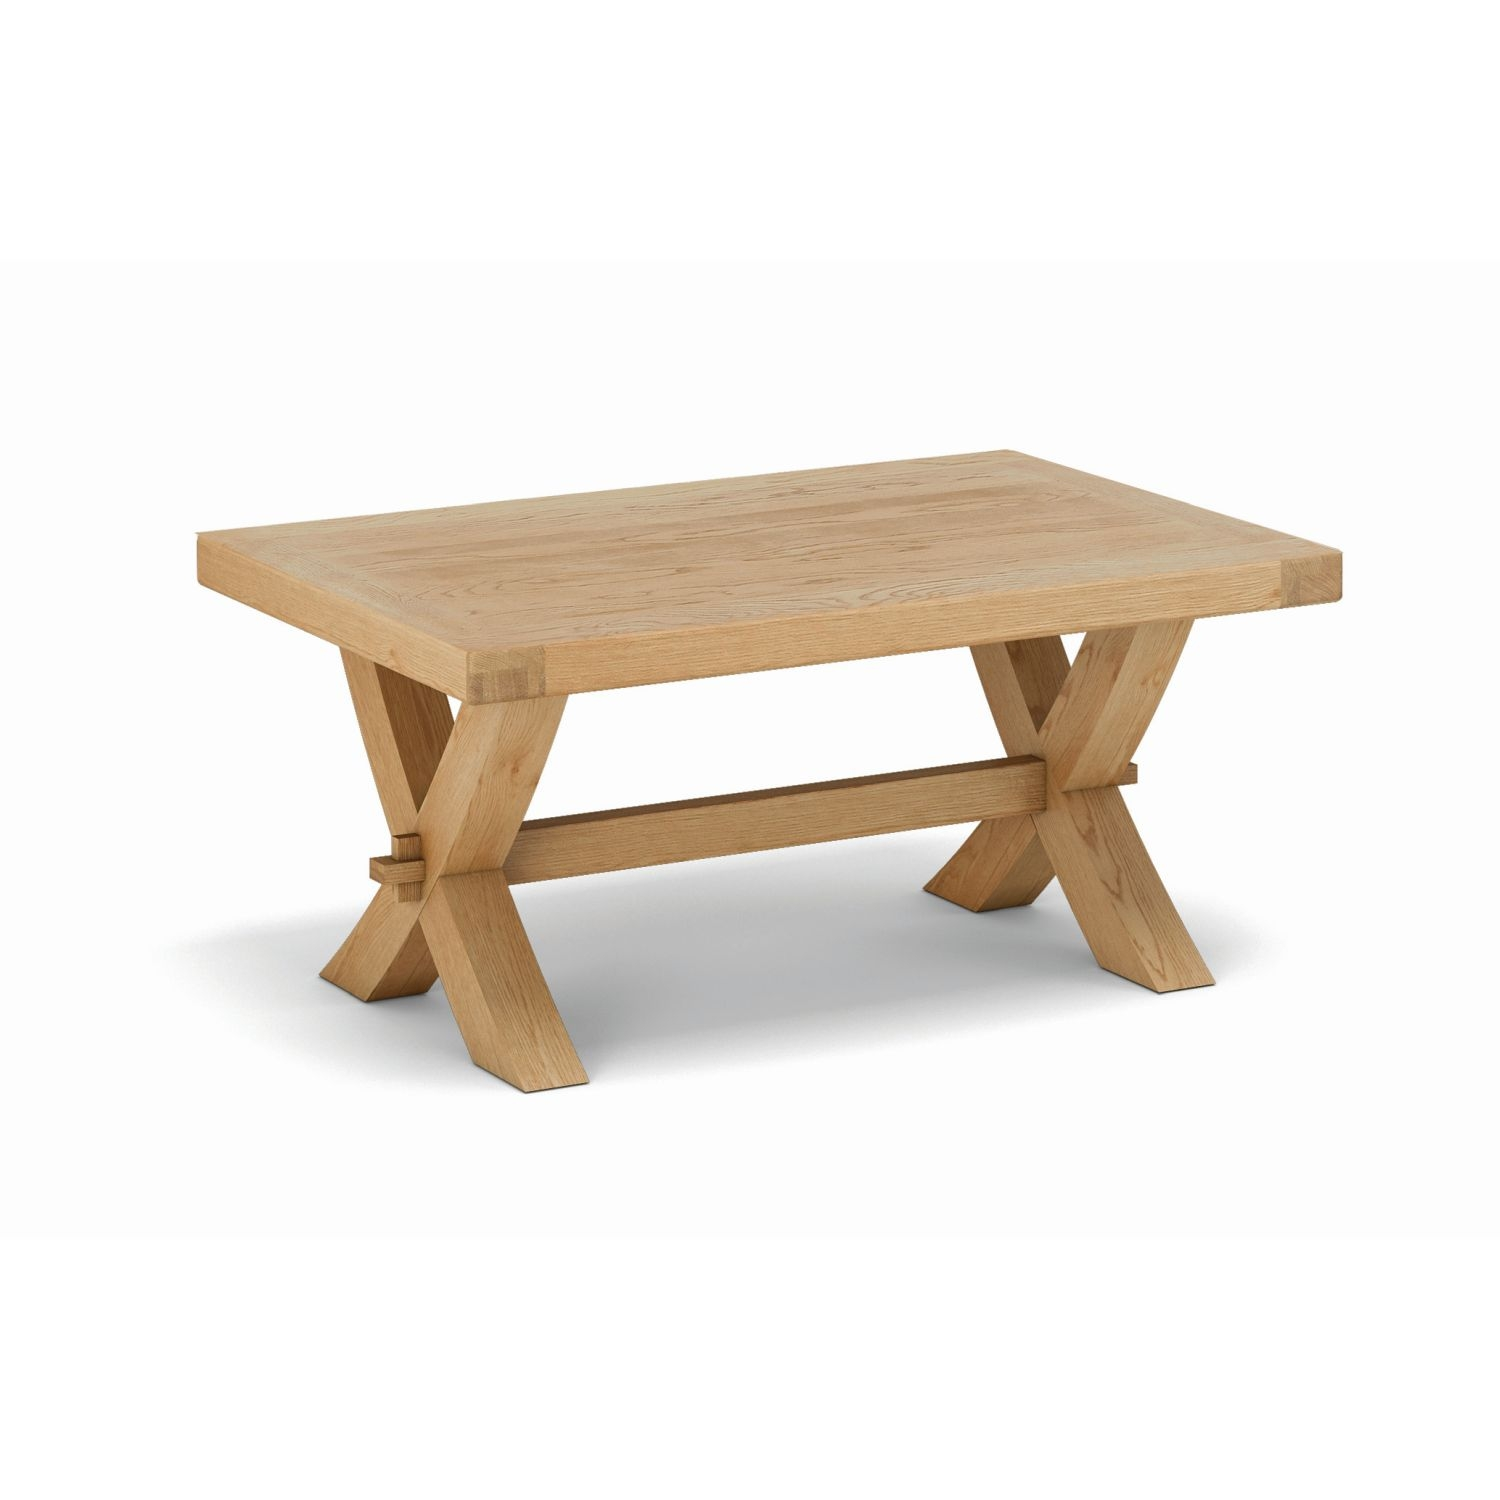 Image of Fairford Cross Leg Coffee Table